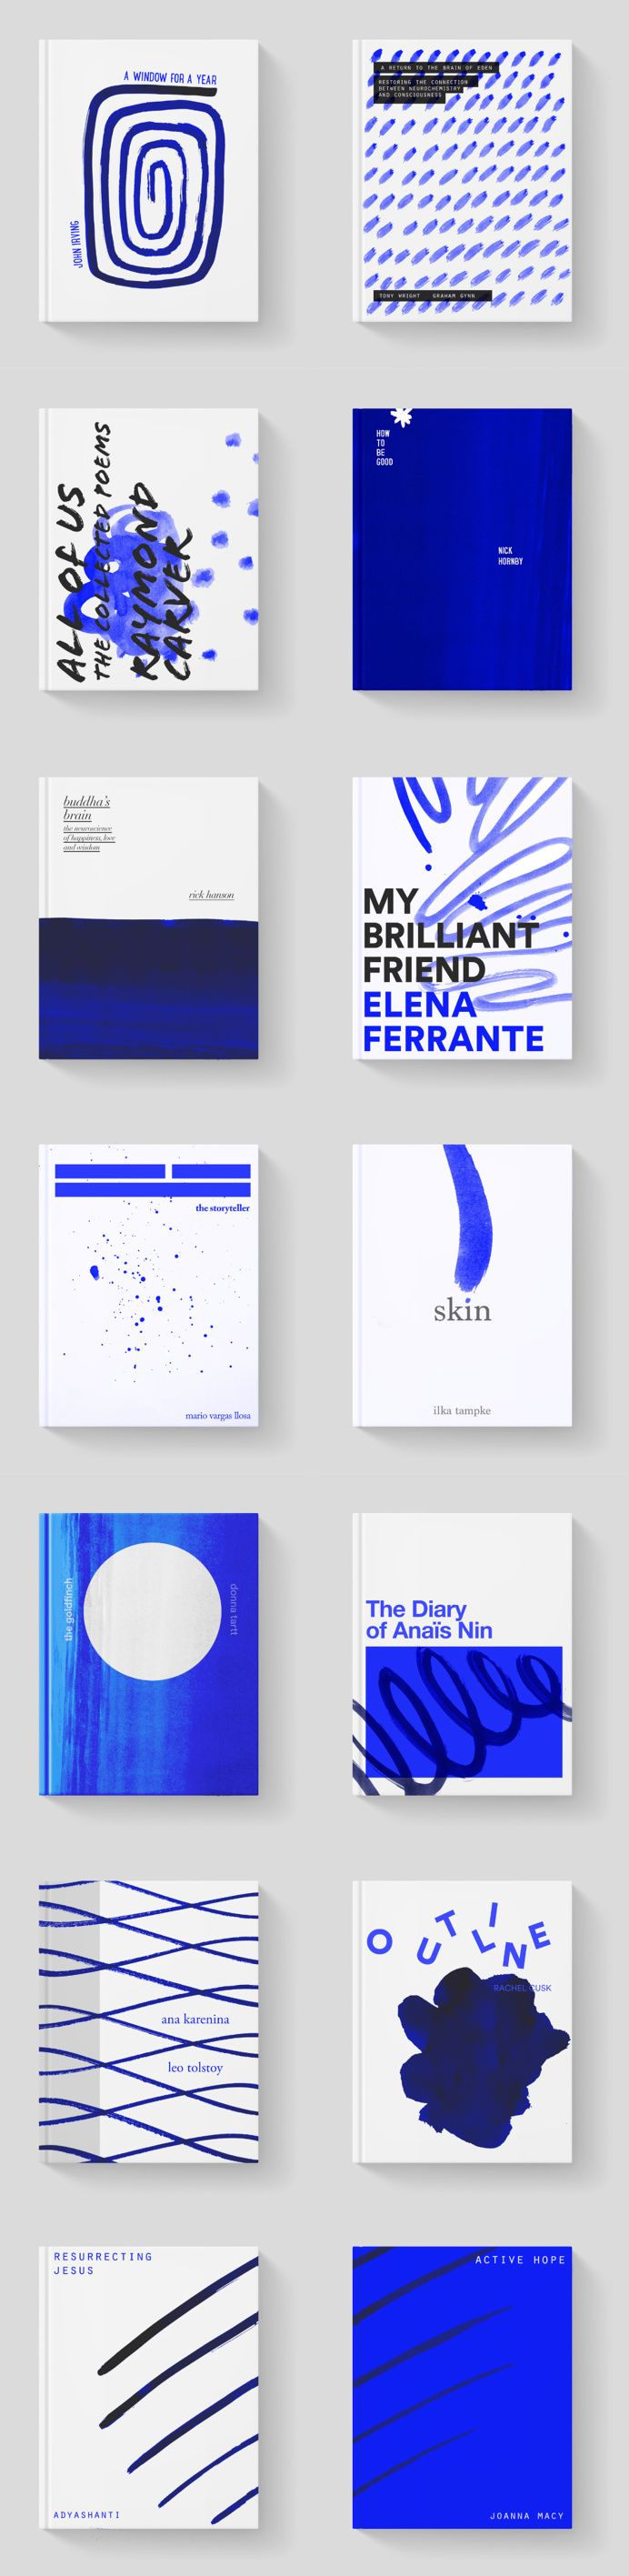 Berühmt 194 best book images on Pinterest | Editorial design, Book design  FX82